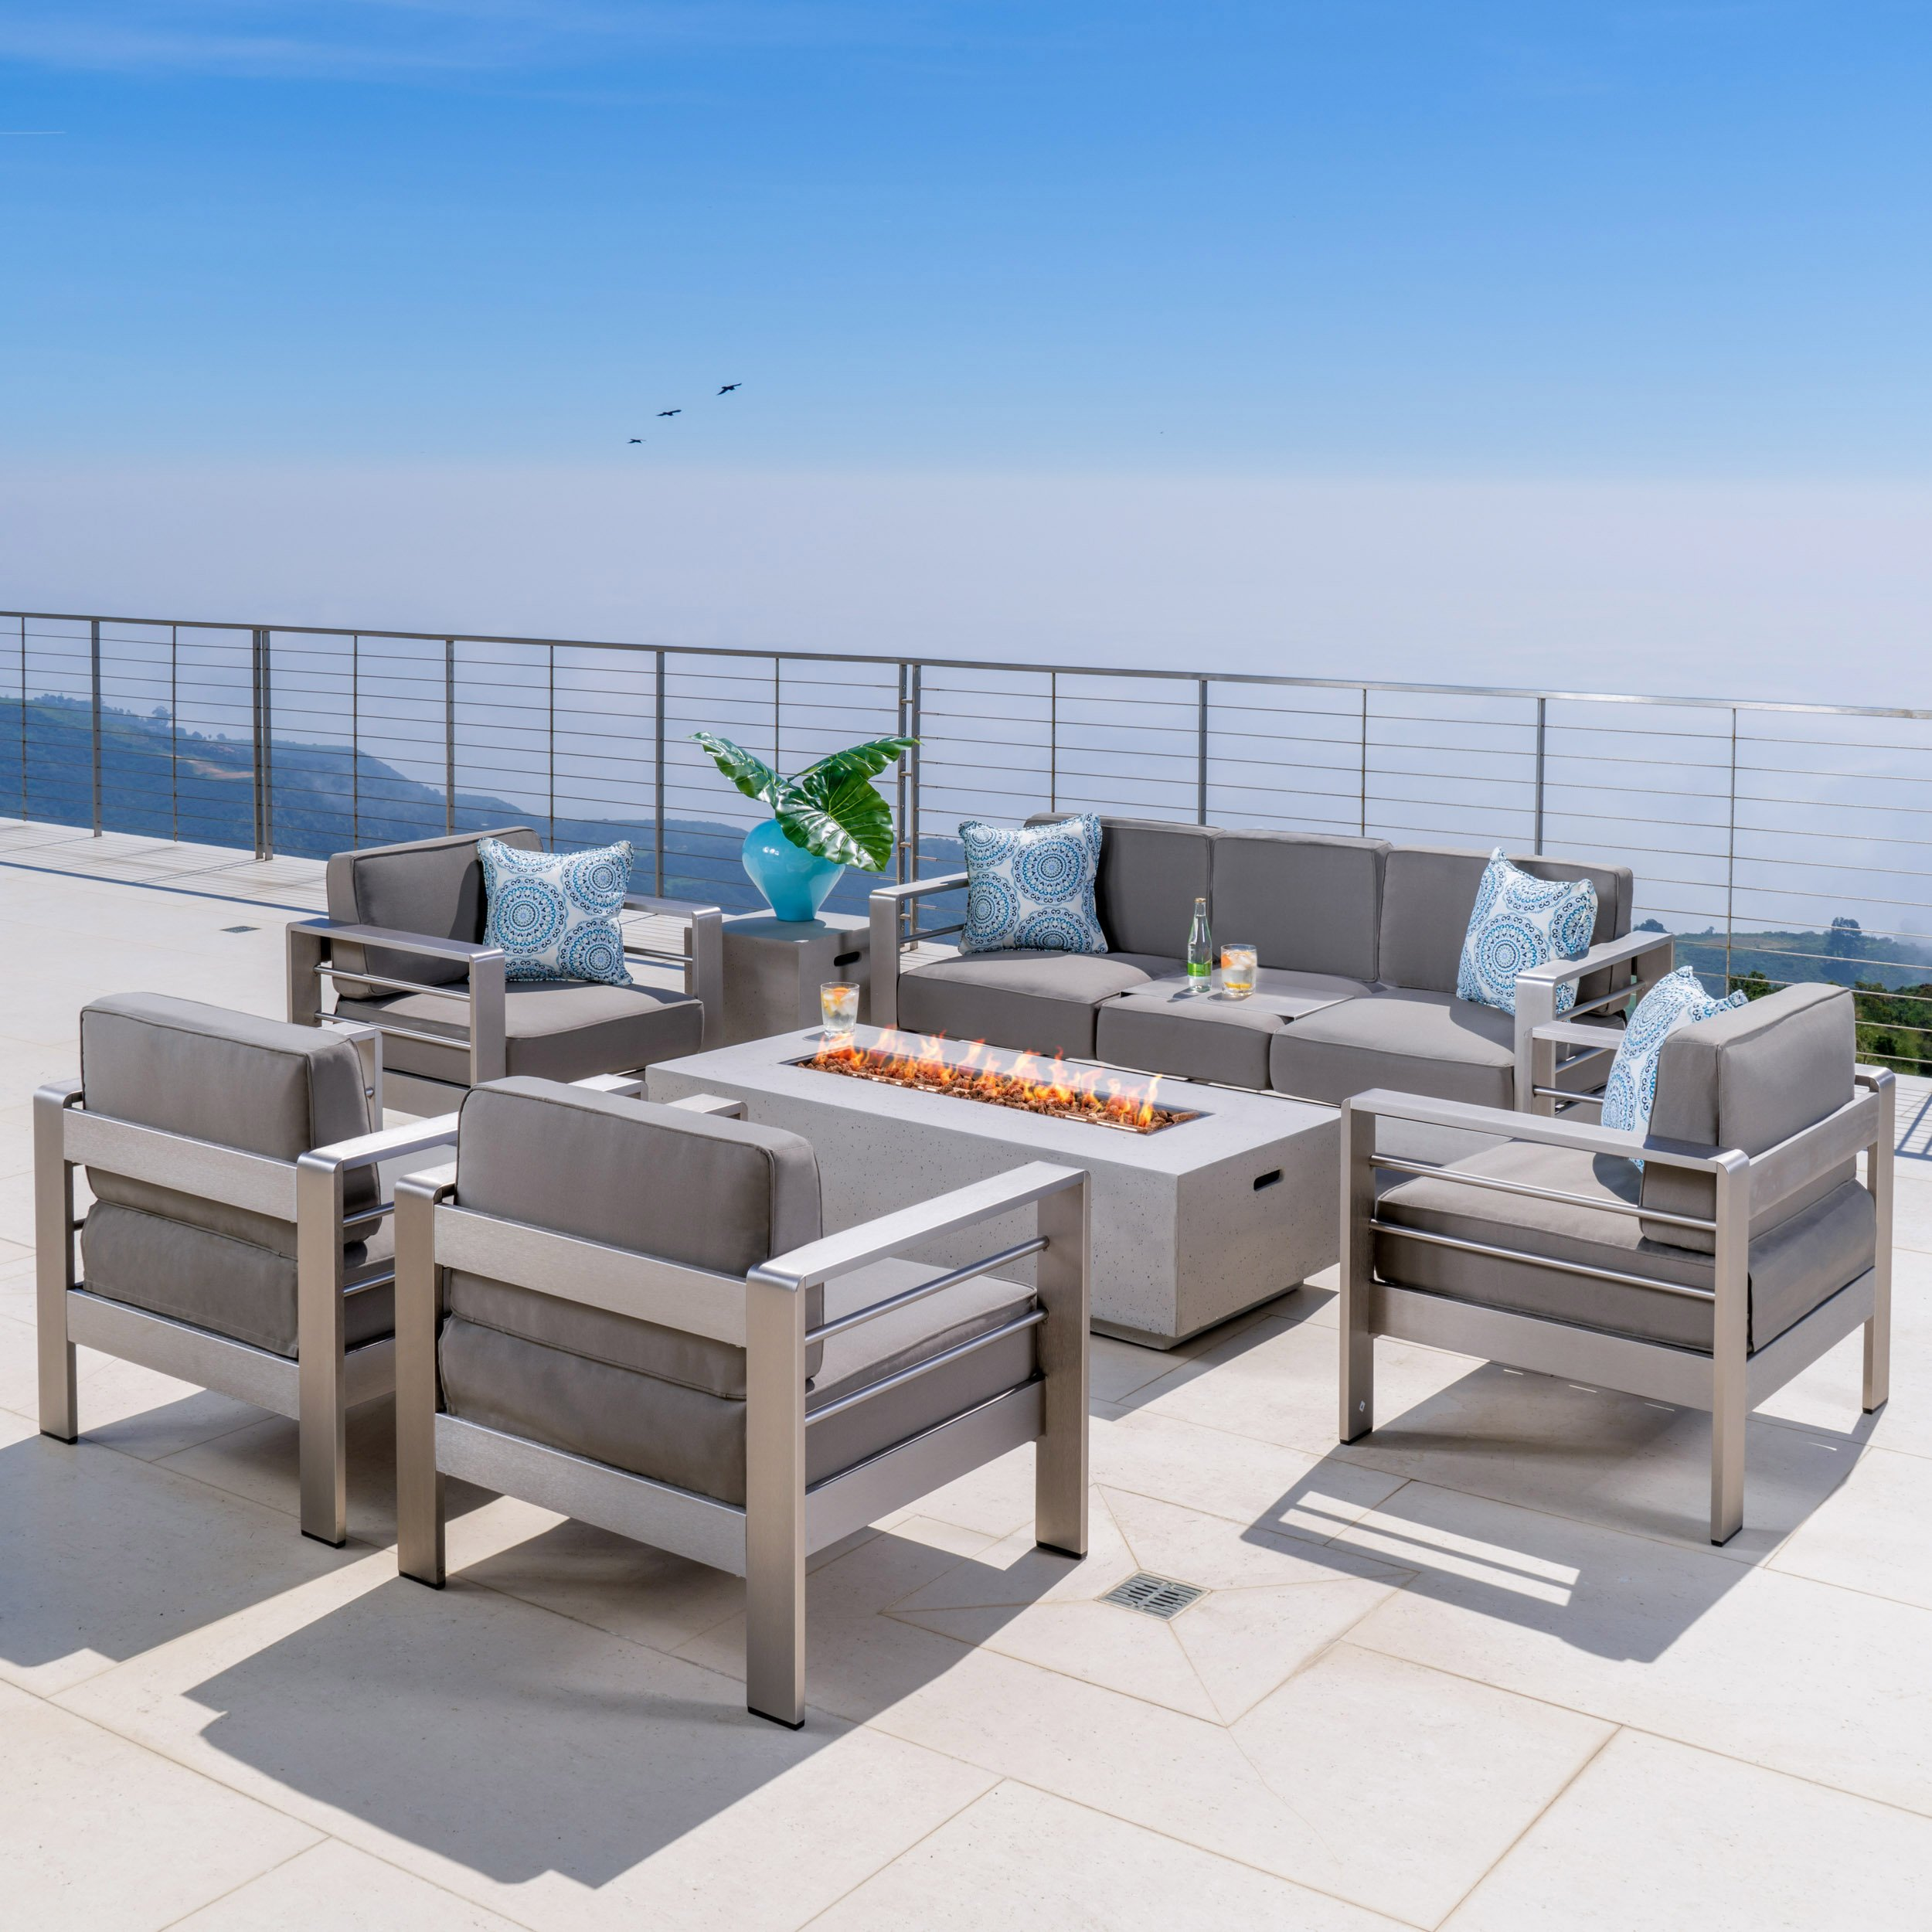 Crested Bay Patio Furniture ~ 5 Piece Outdoor Patio Chair and Sofa Set with Propane (Gas) Fire Table (Pit) (Light Grey) by GDF Studio